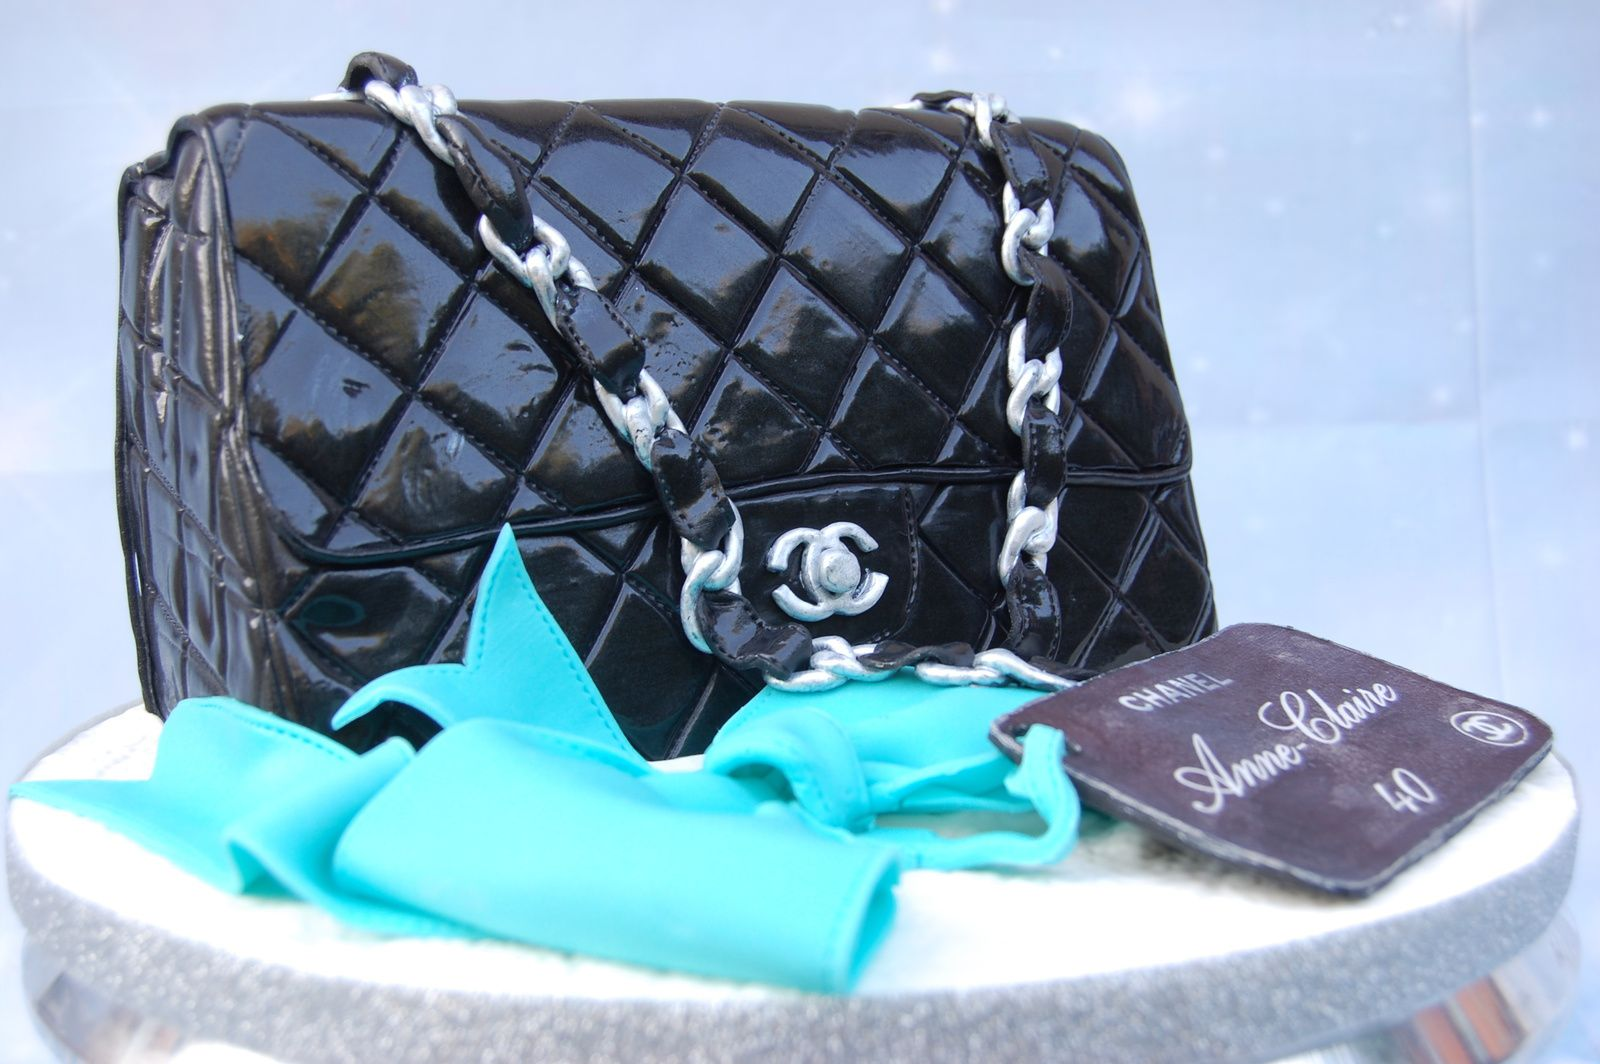 GATEAU SAC A MAIN CHANEL TIMELESS